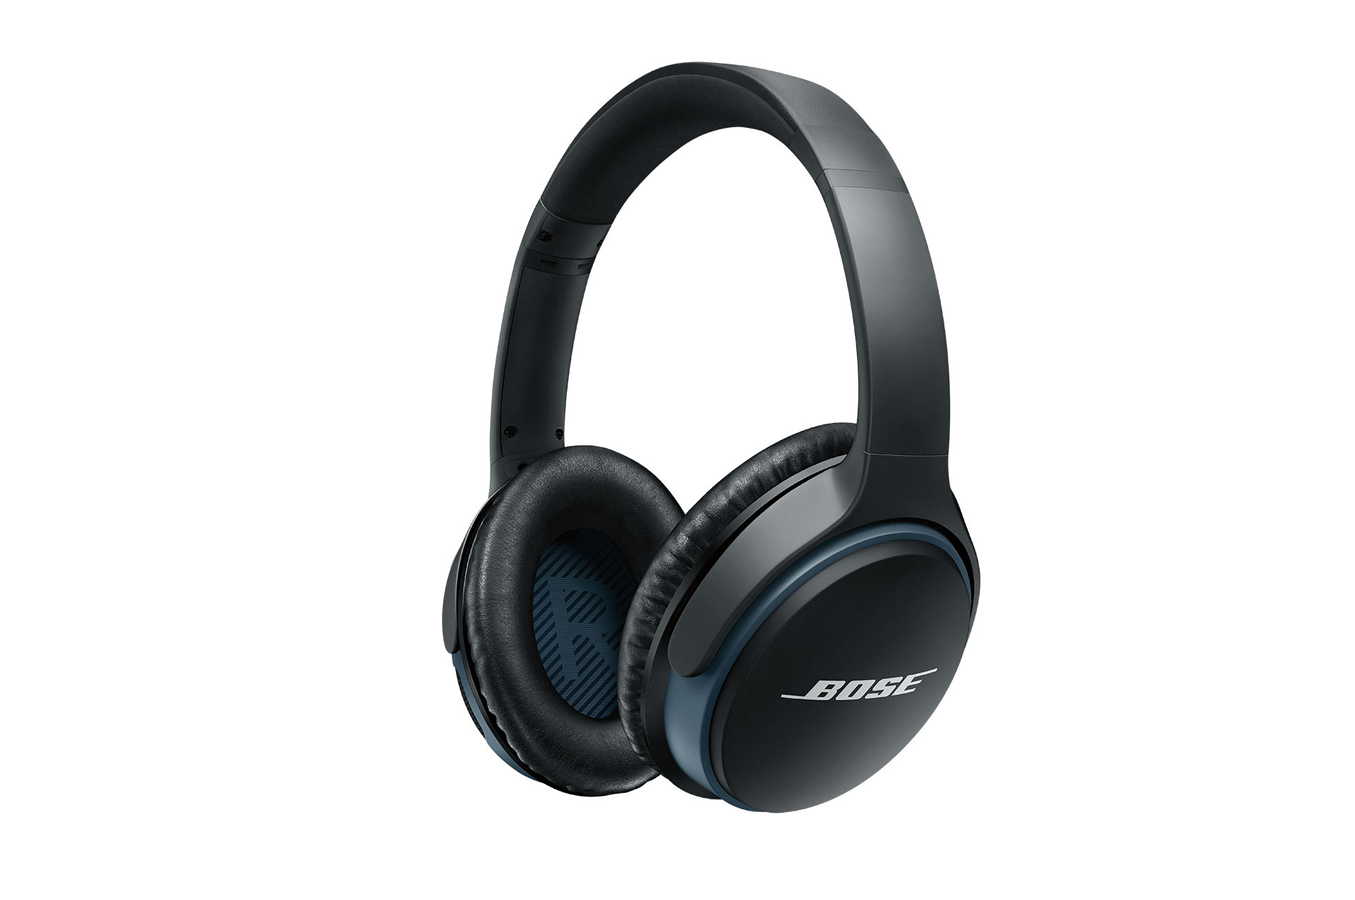 casque audio bose soundlink ii bluetooth noir 4141075 darty. Black Bedroom Furniture Sets. Home Design Ideas